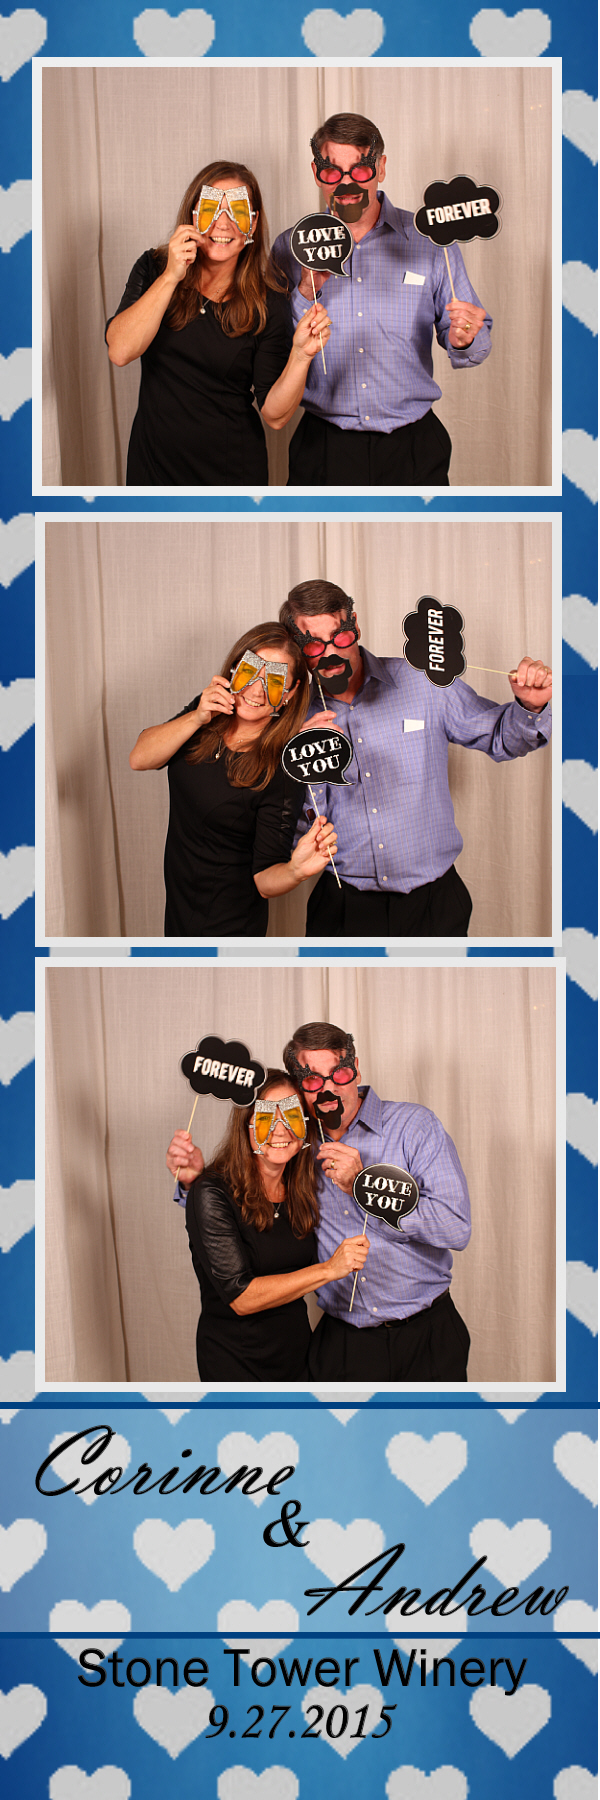 Guest House Events Photo Booth C&A (26).jpg